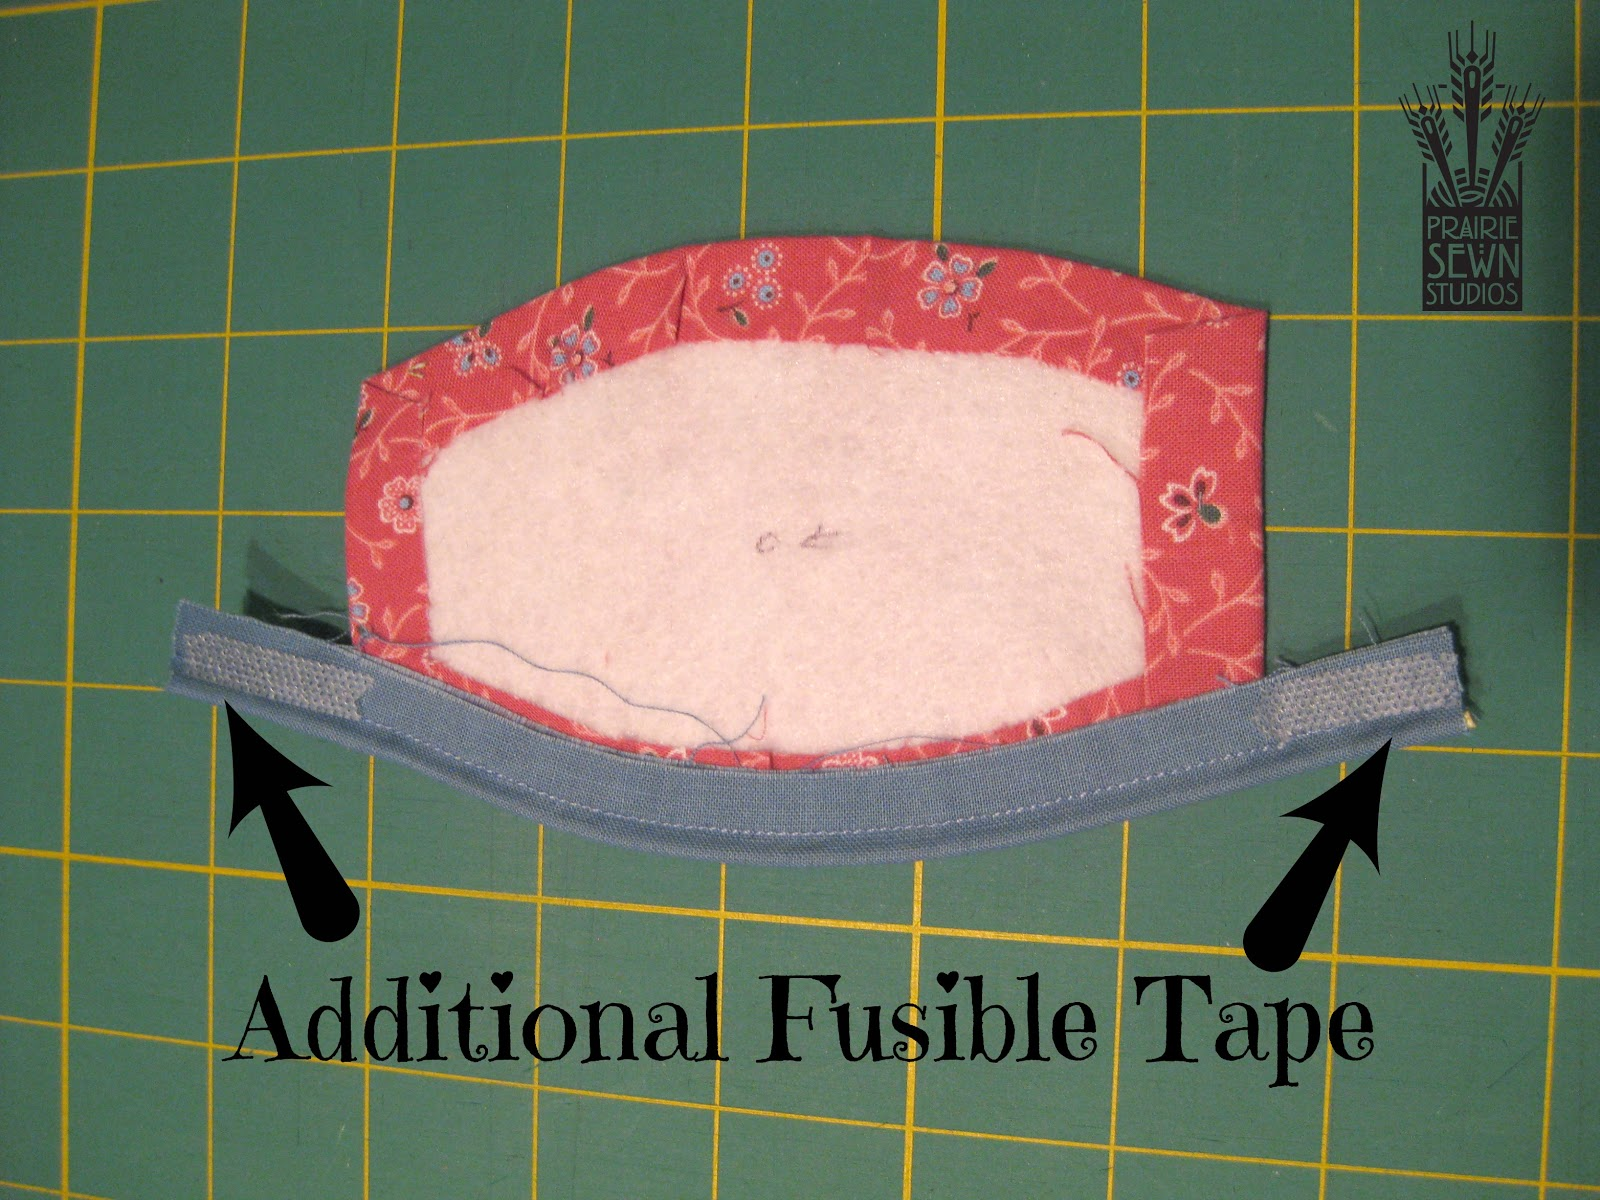 Add fusible tape to piping -Pumpkin with Piping